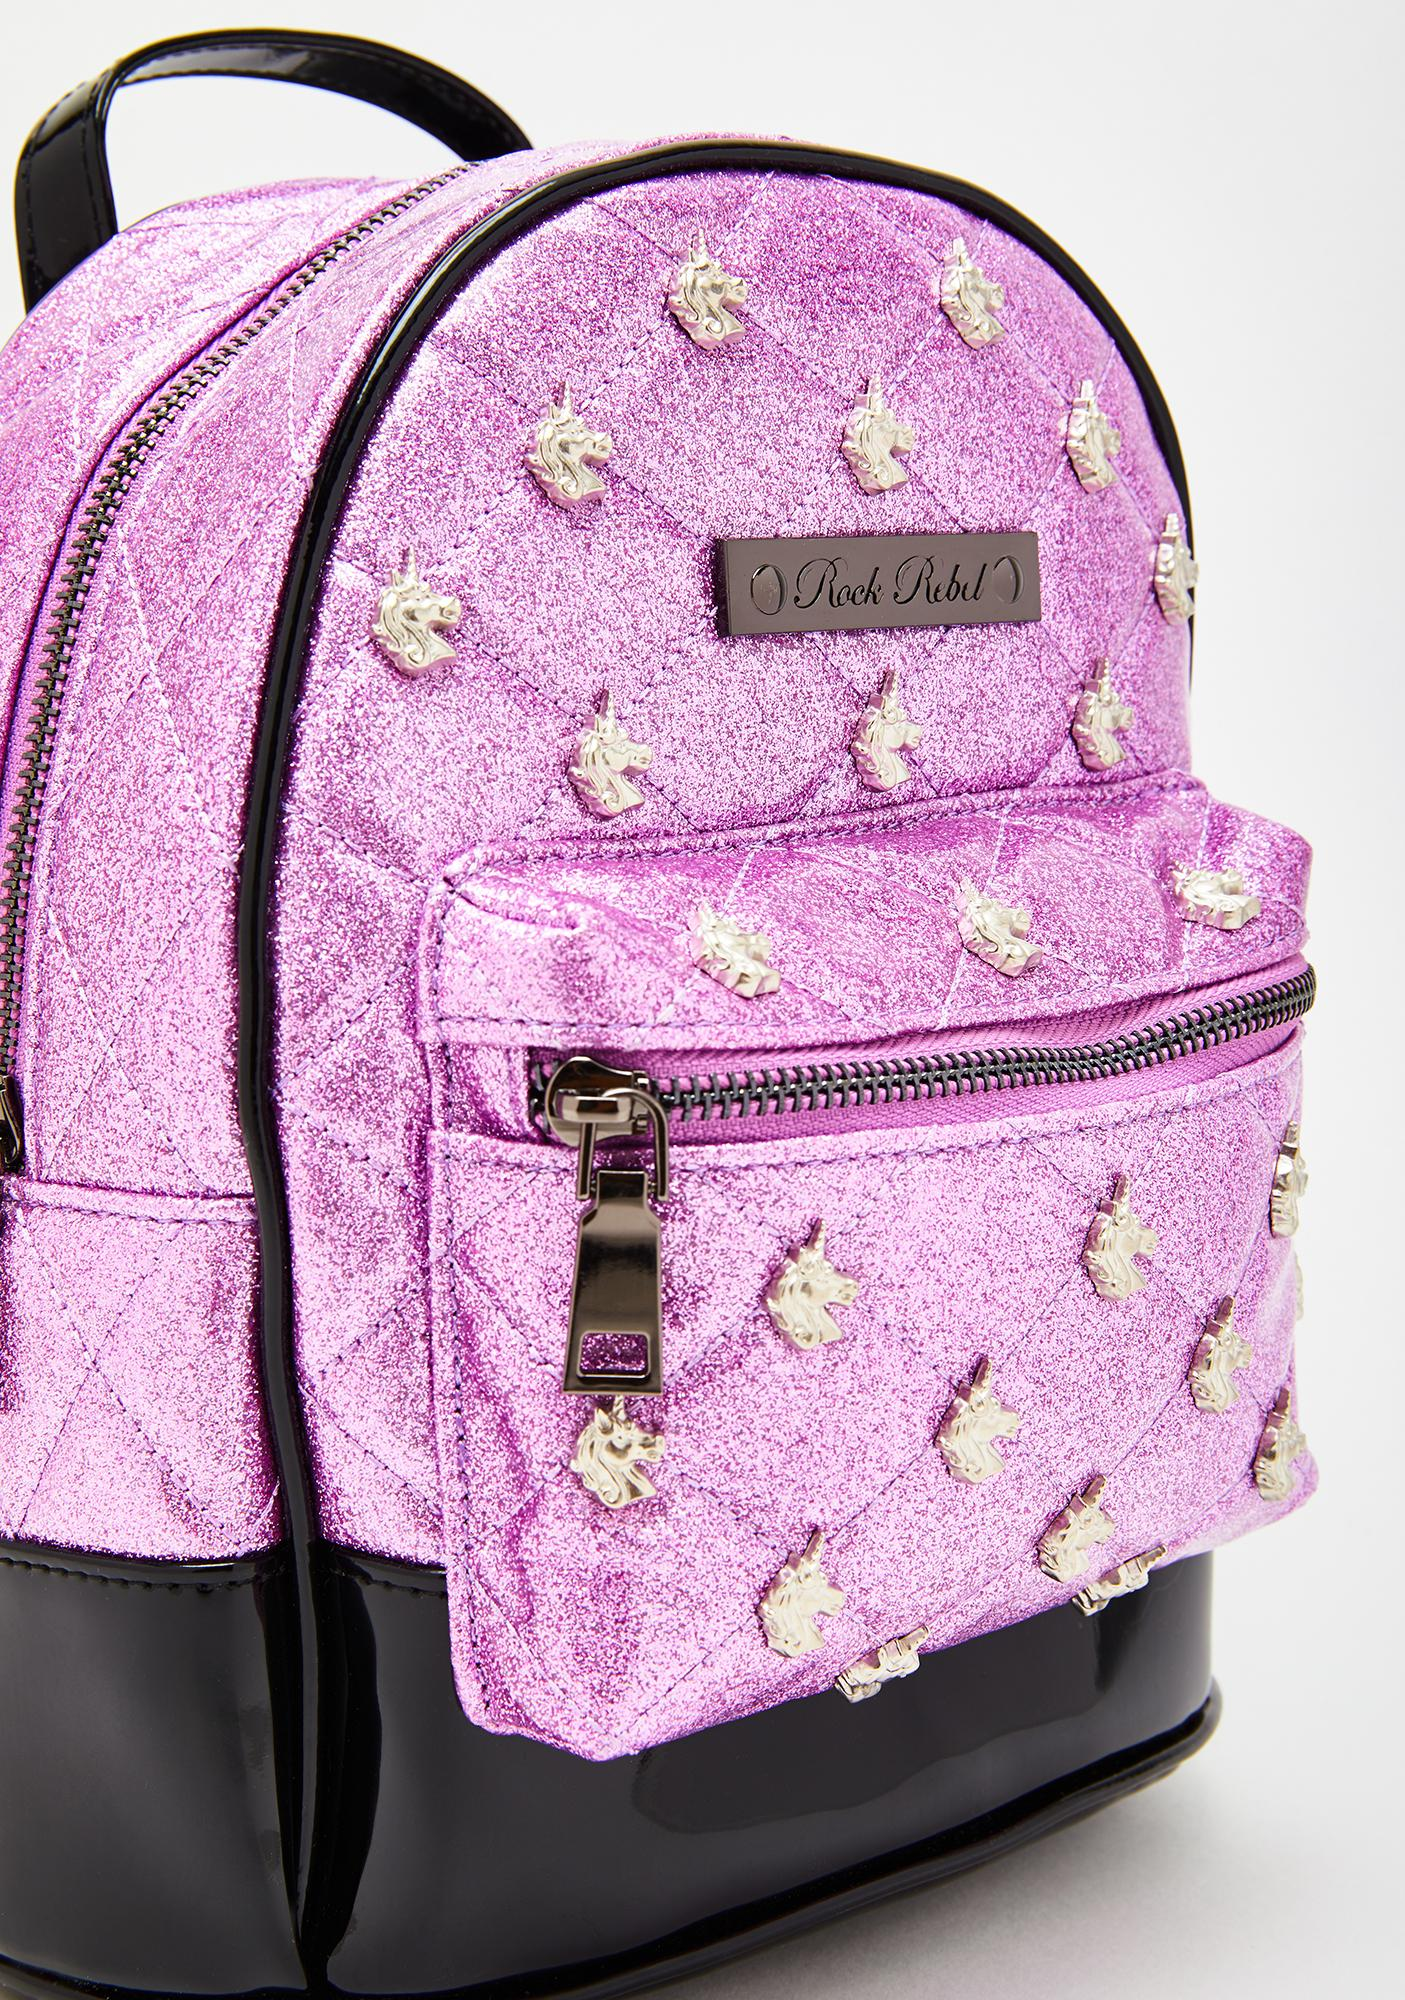 Rock Rebel Pink Glitter Unicorn Quilted & Studded Mini Backpack